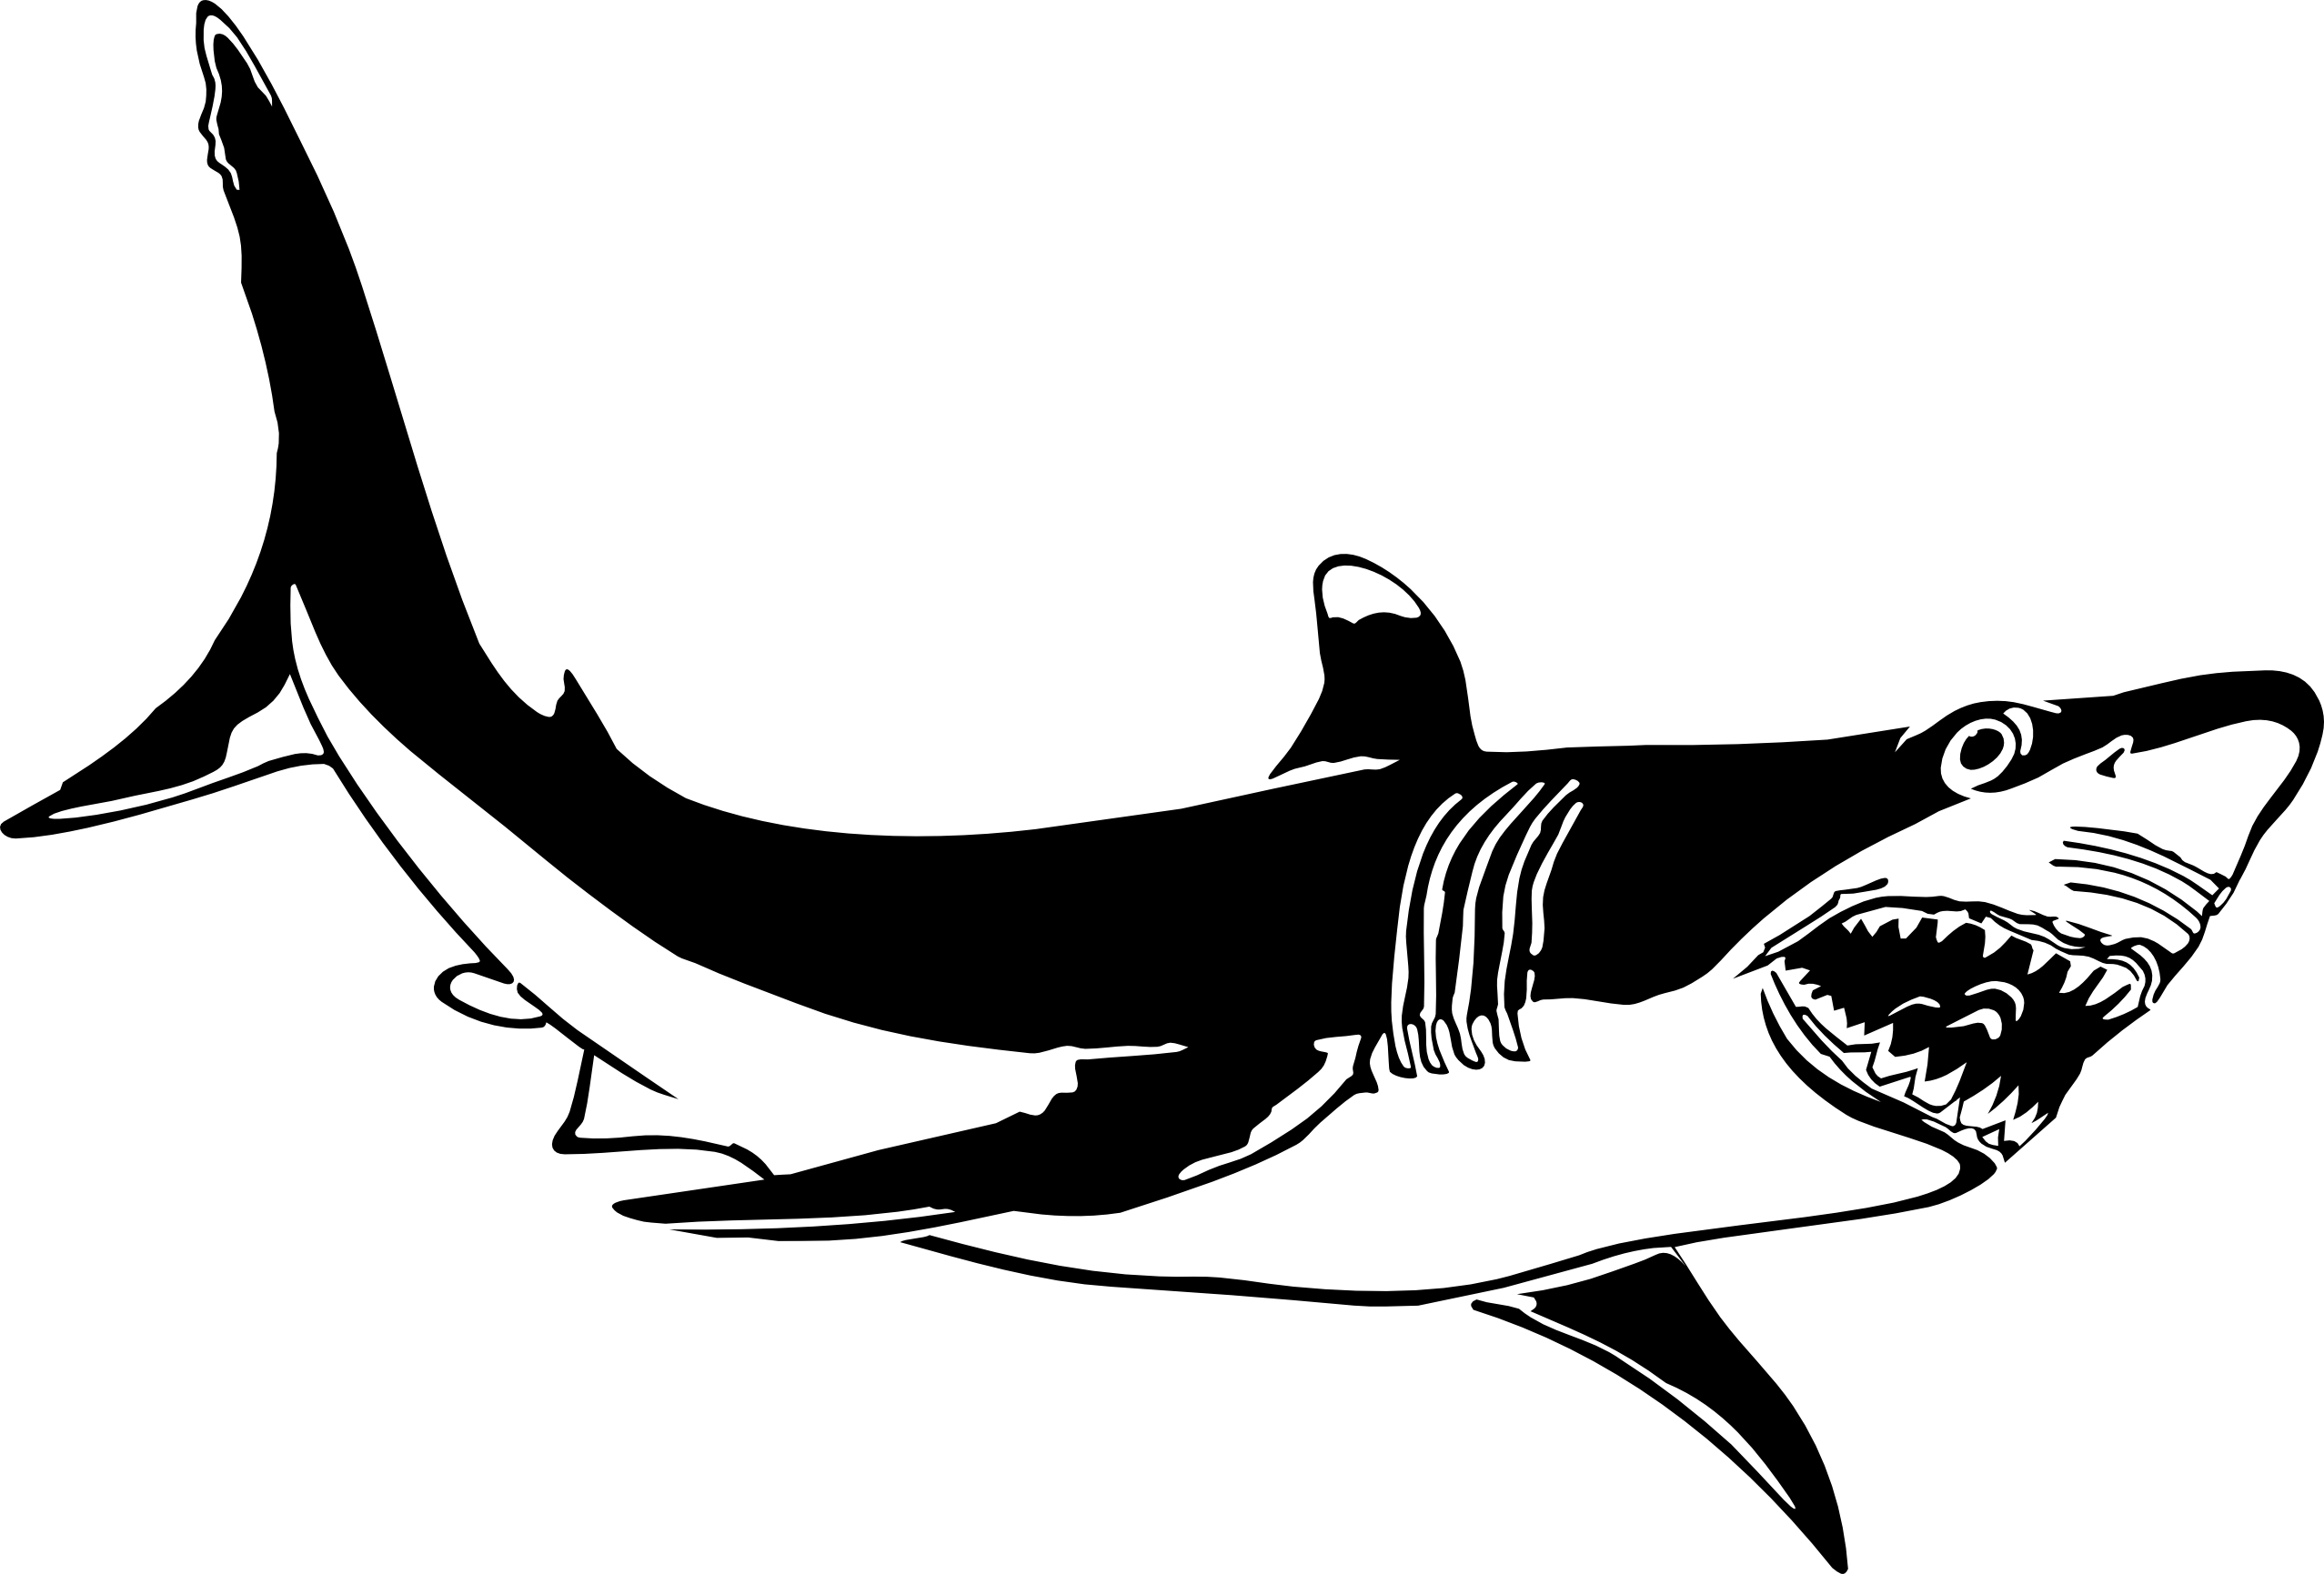 Drawing shark. Great white clipart panda